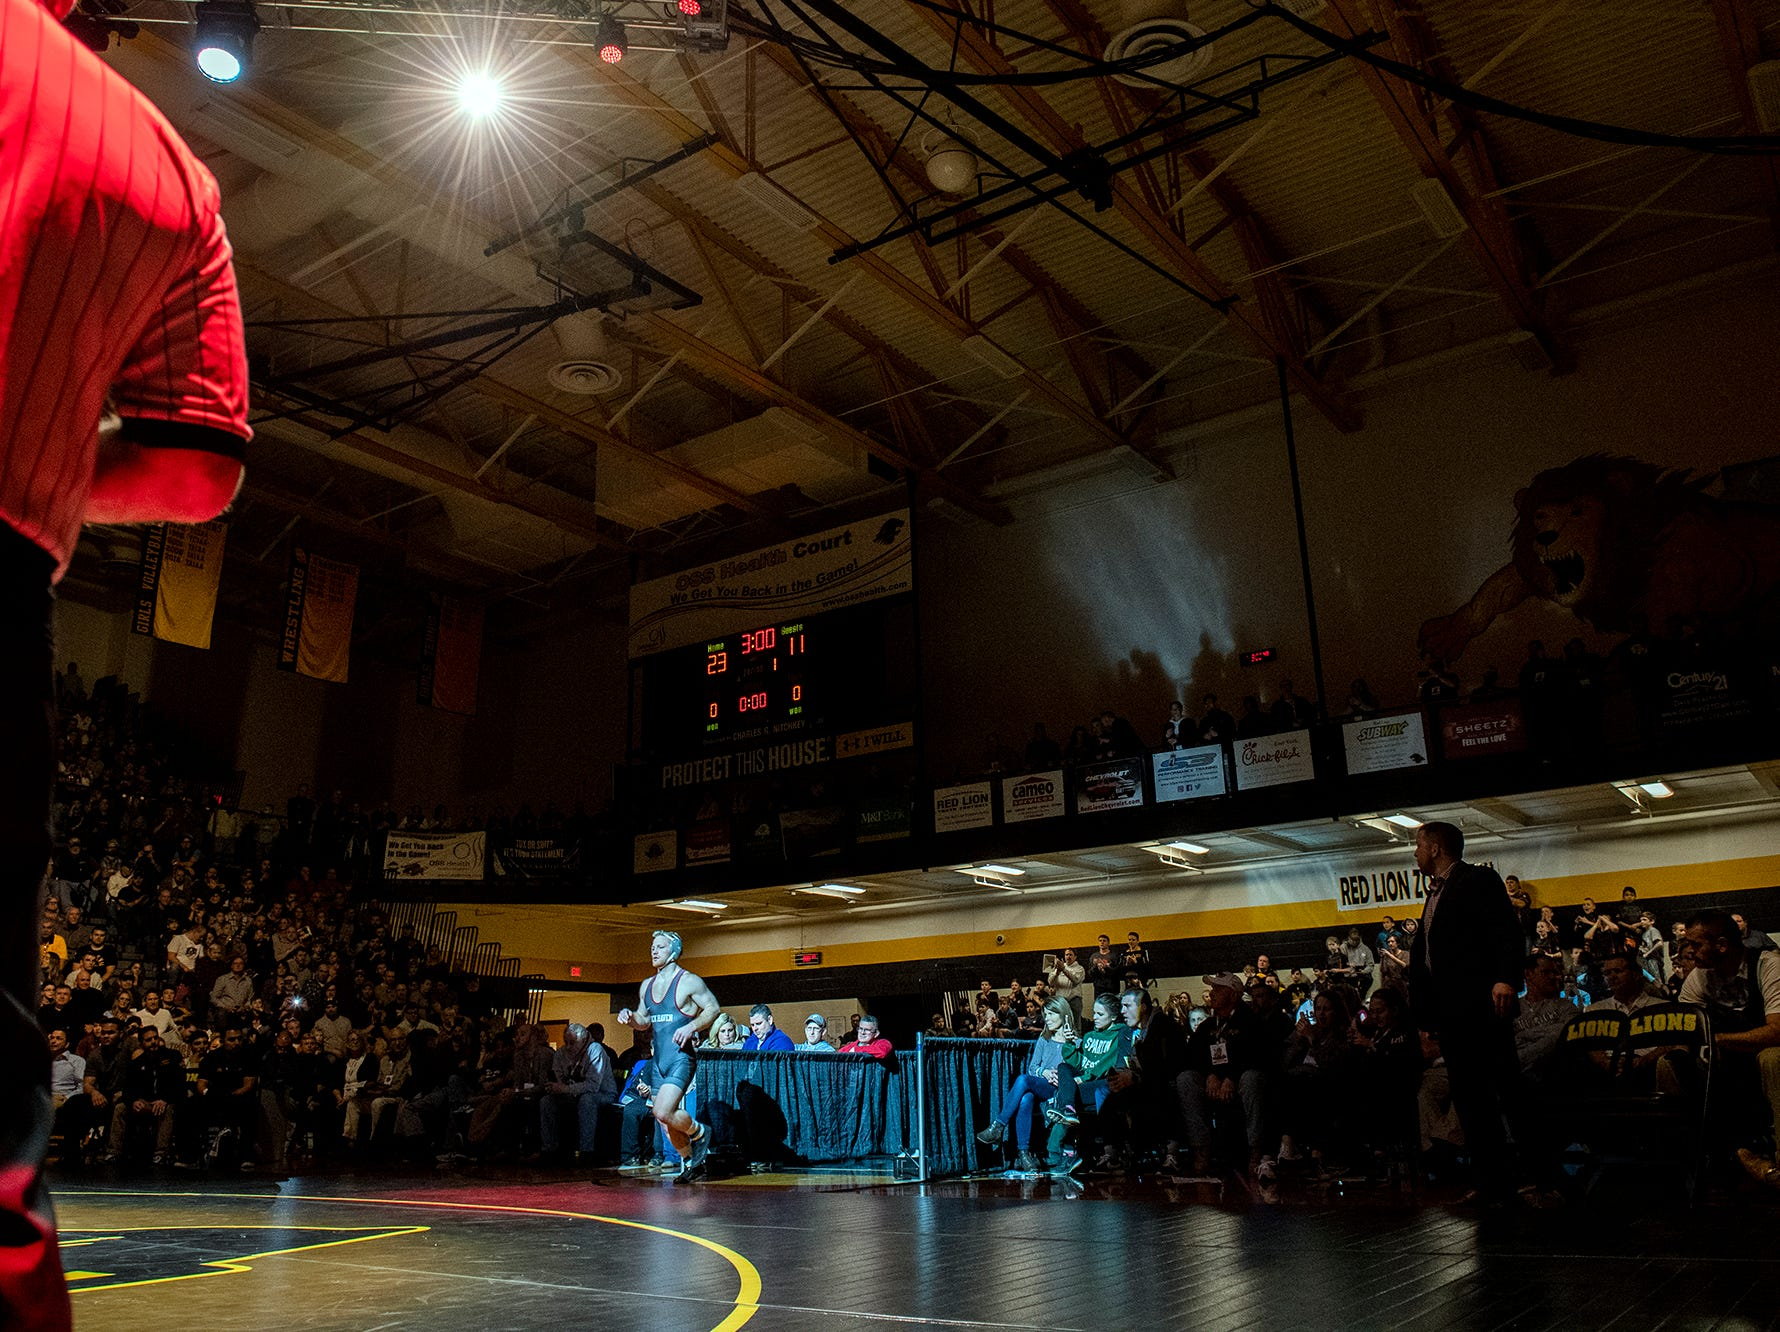 Lock Haven wrestler and Kennard-Dale grad Chance Marsteller (No. 4) trots onto the mat for his 165-pound match against Arizona State's Josh Shields (No. 5) at Red Lion's Fitzkee Athletic Center on Friday, Jan. 25, 2019. Shields beat Marsteller, 2-1, in a tiebreaker. No. 22 Lock Haven upset No. 12 Arizona State, 23-14, in the first ever 'Rumble in the Jungle.'